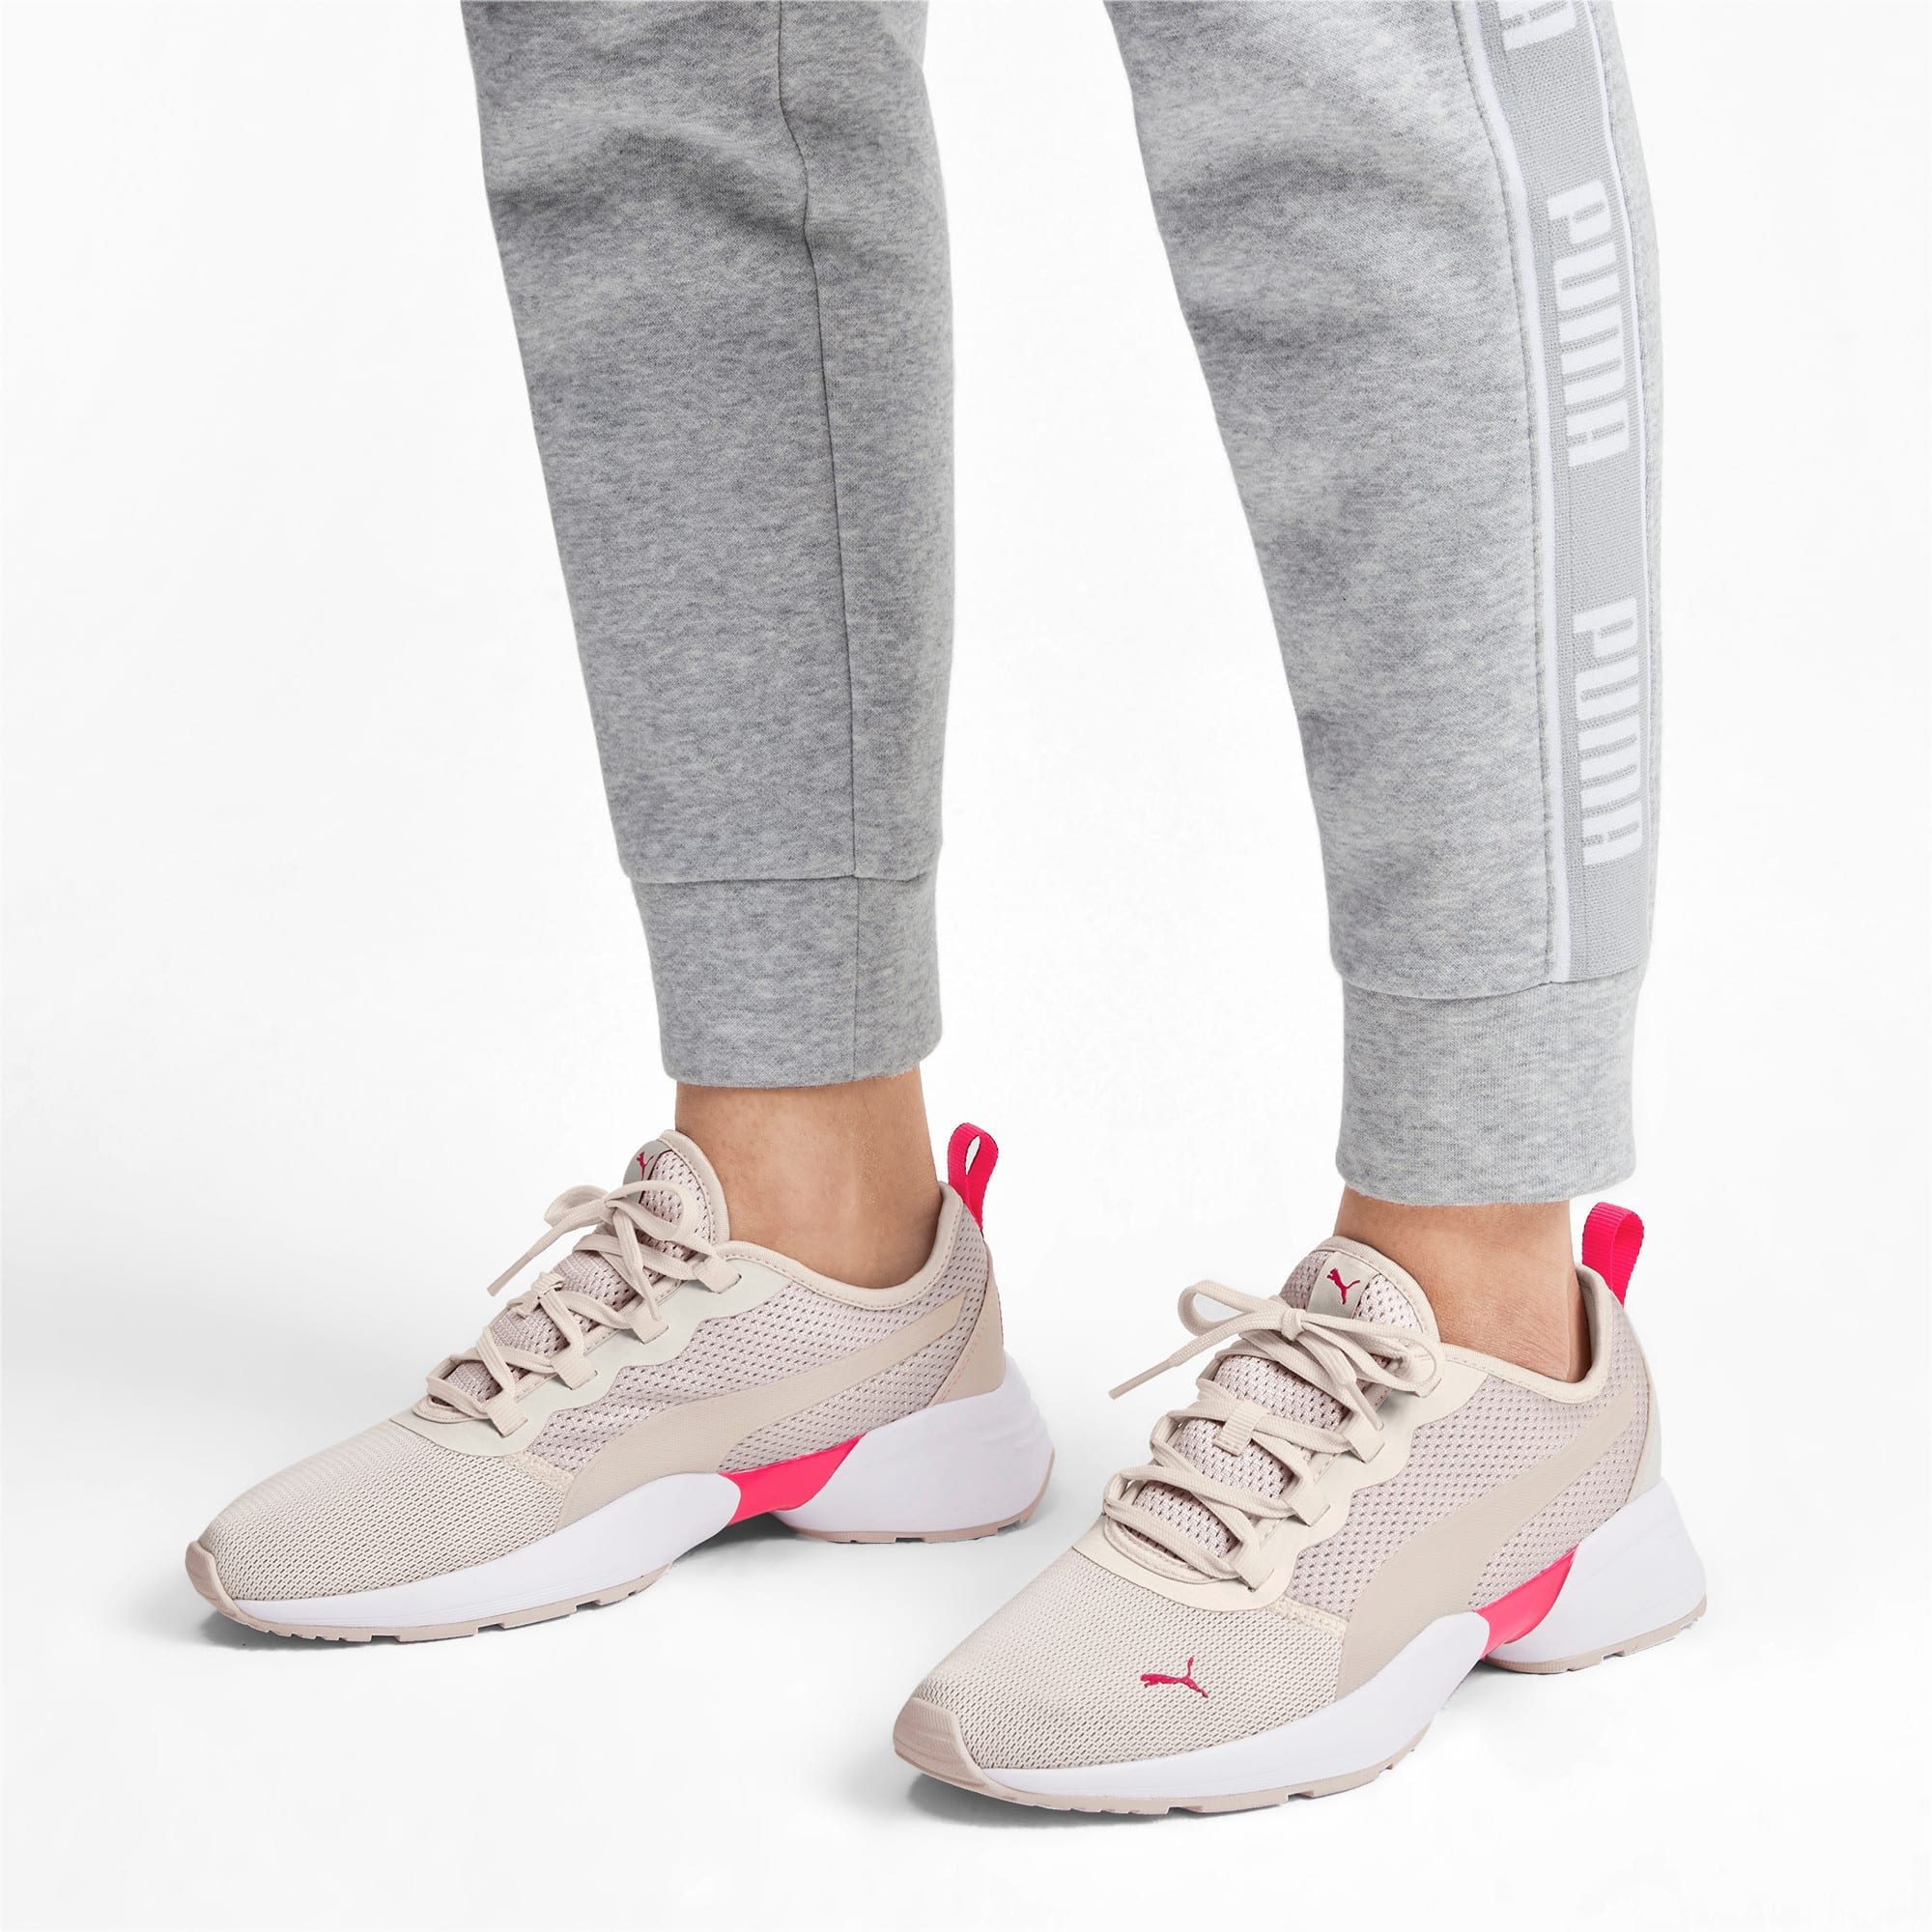 Thumbnail 3 of Sirena Sport Women's Trainers, Pastel Parchment-Nrgy Rose, medium-IND